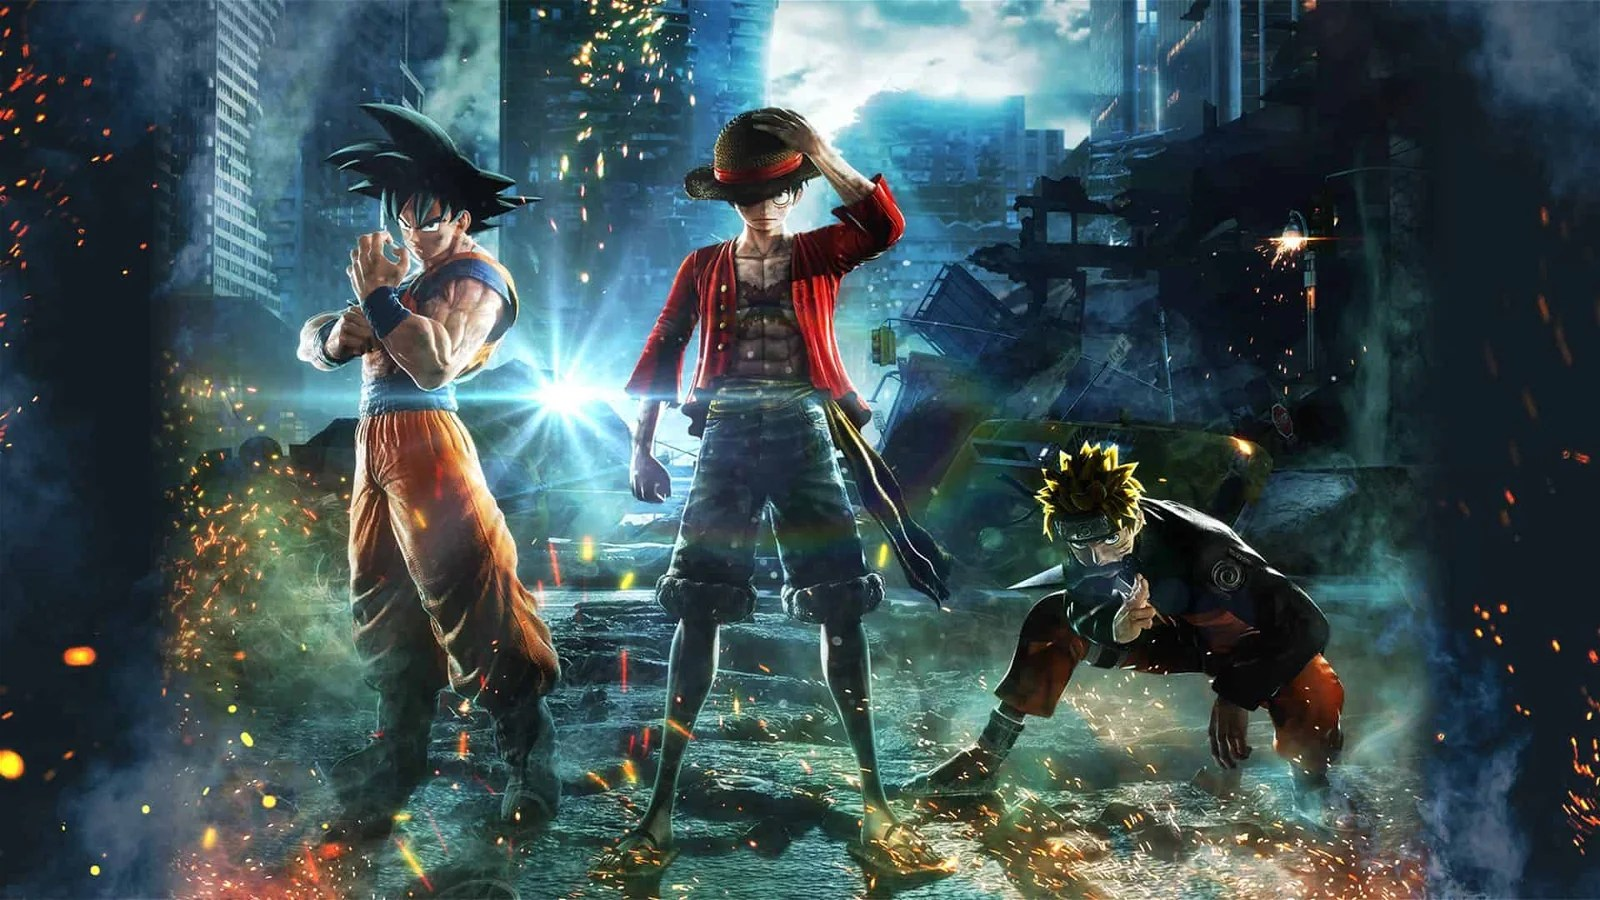 Anime Death Note Wallpaper Jump Force Playstation 4 Review A Somber Celebration